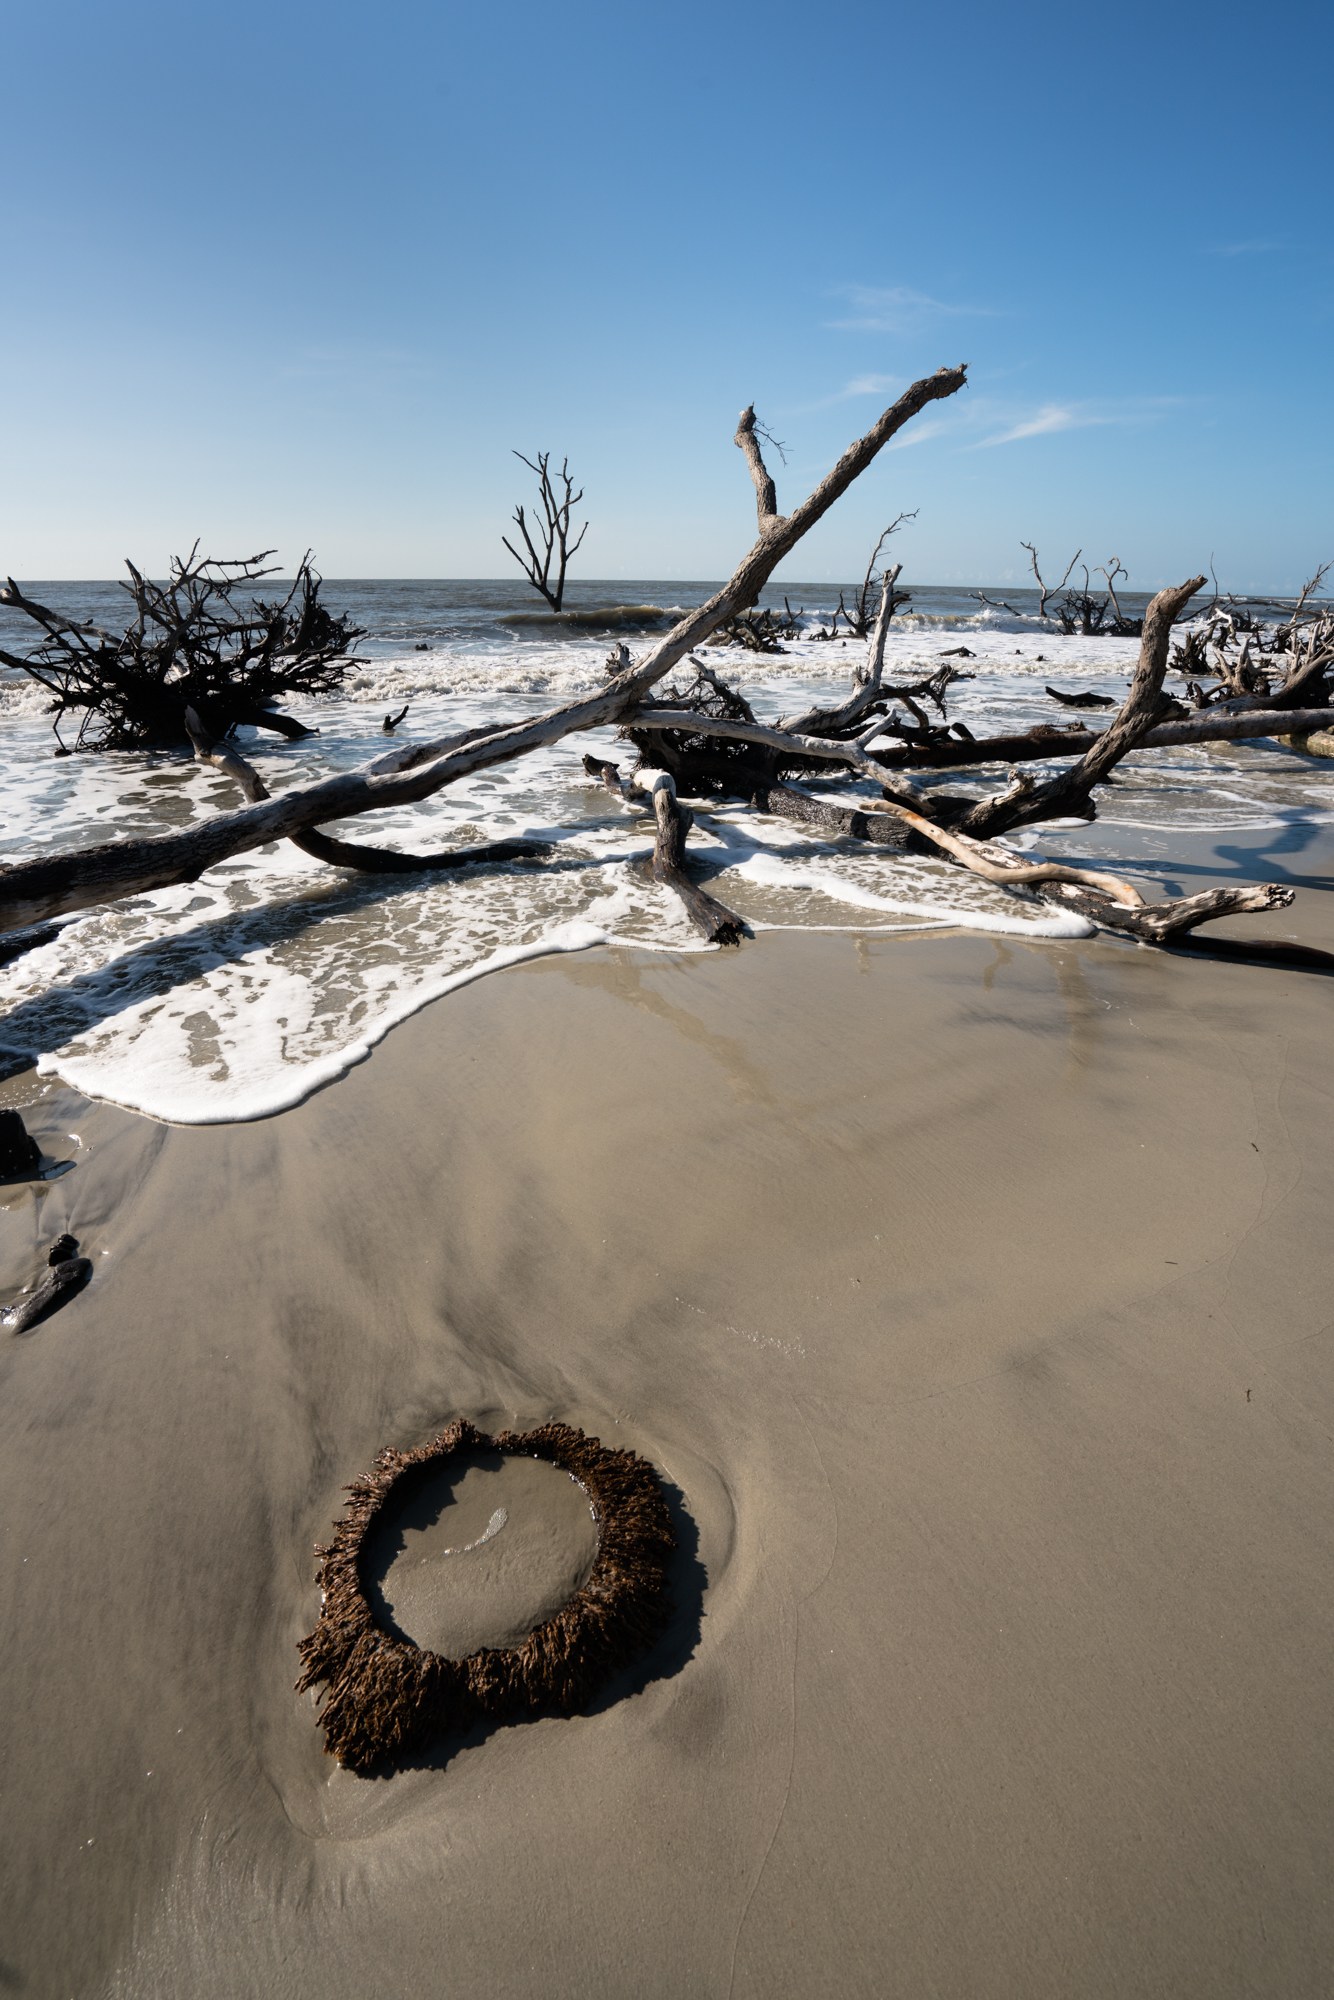 So many textures and details on the beach at Hunting Island state park